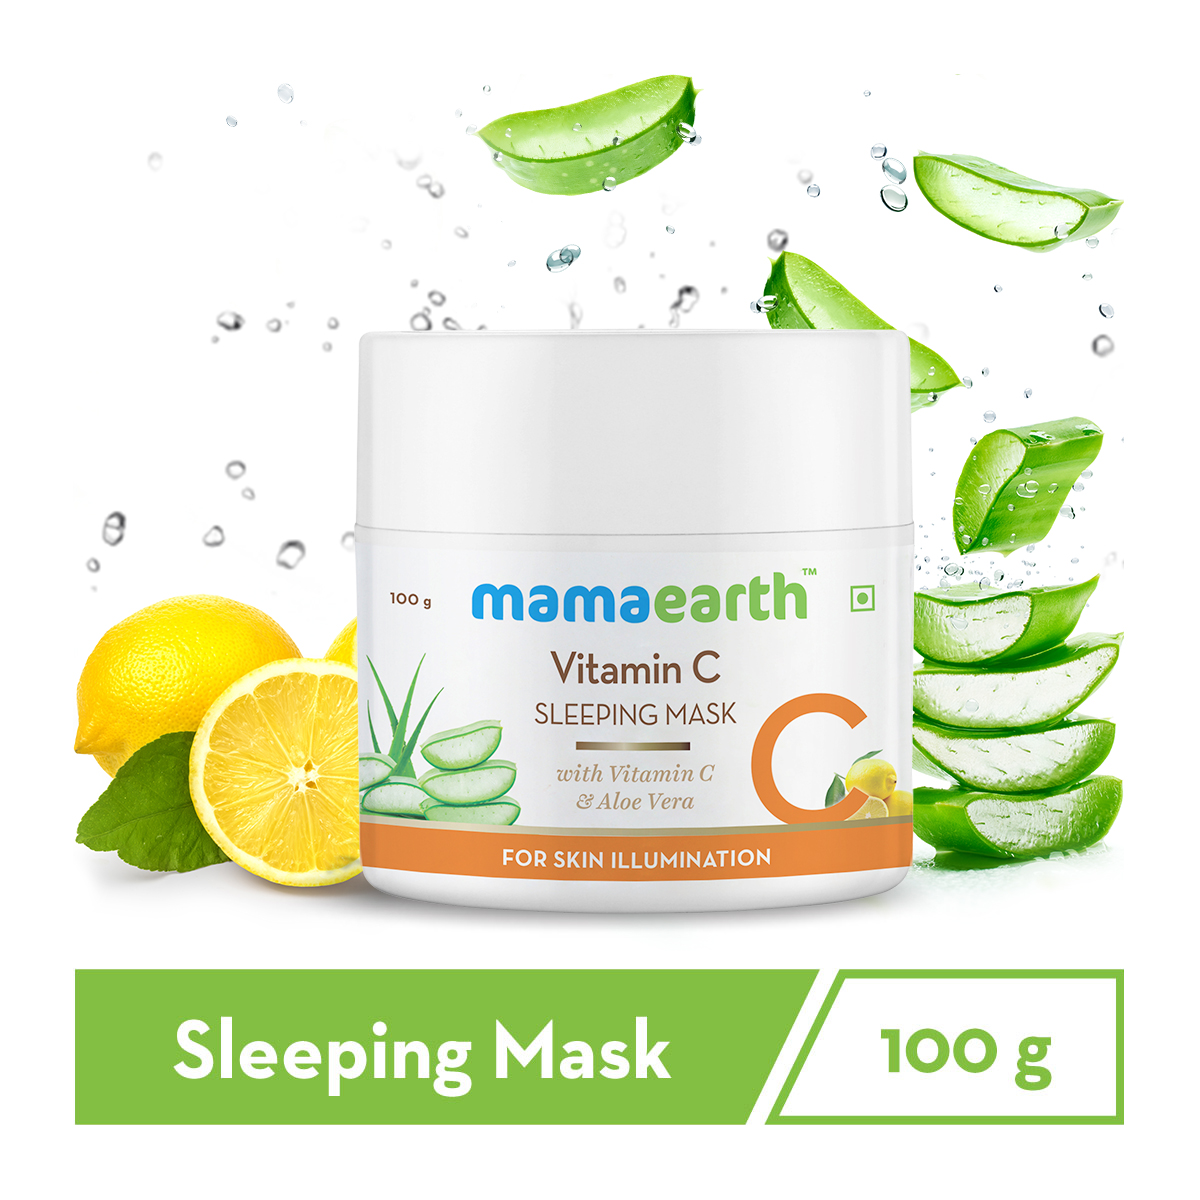 Vitamin C Sleeping Mask, Night Cream For Women, for Skin Illumination - 100 g